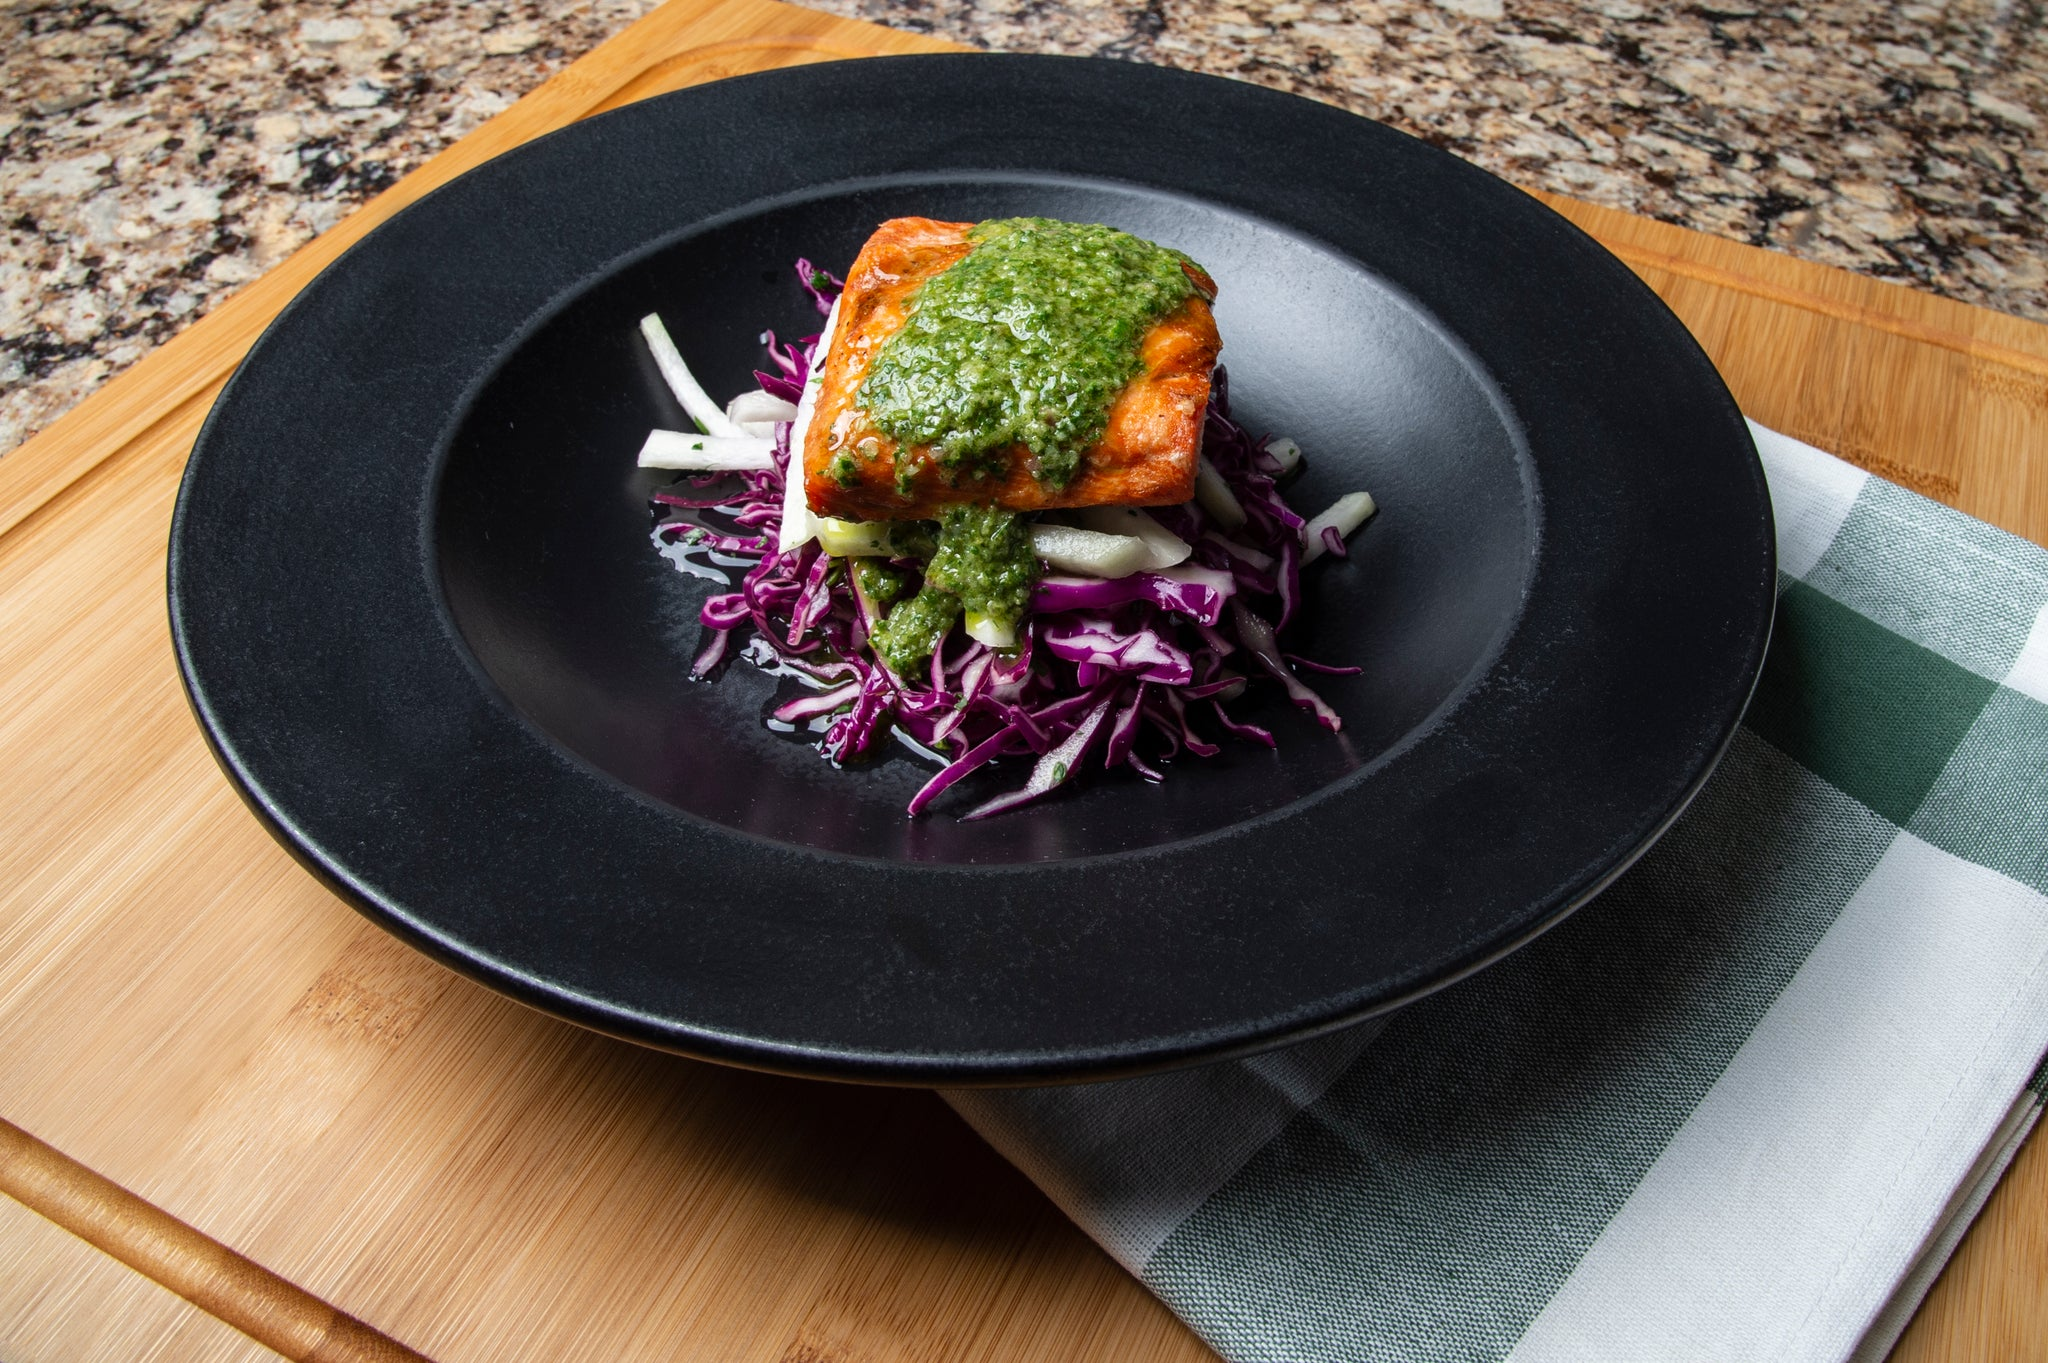 Grilled Salmon with Chimichurri Sauce and Kohlrabi-Cabbage Slaw